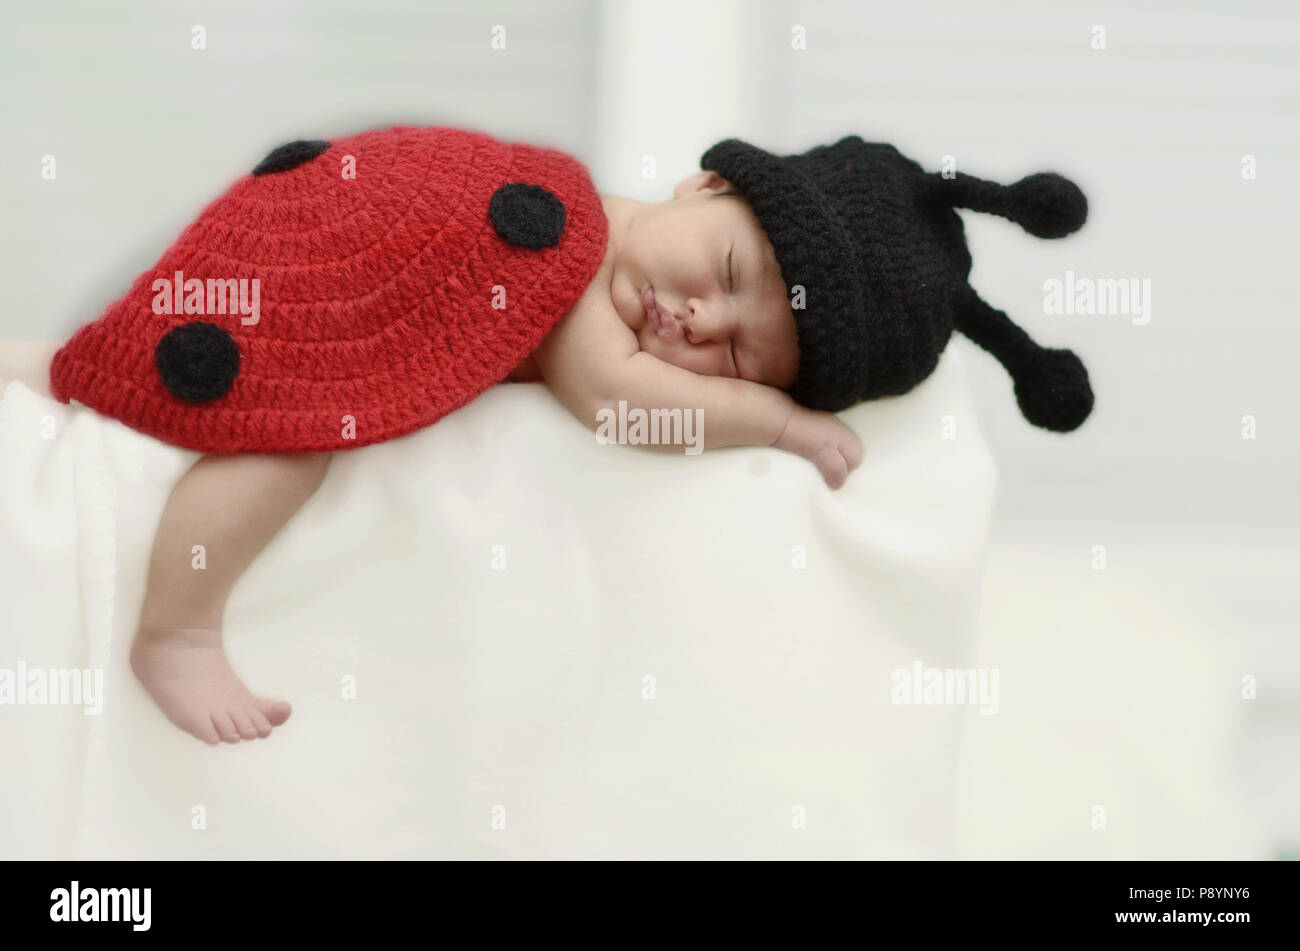 Cute baby sleeping in peace, baby deep sleep - Stock Image